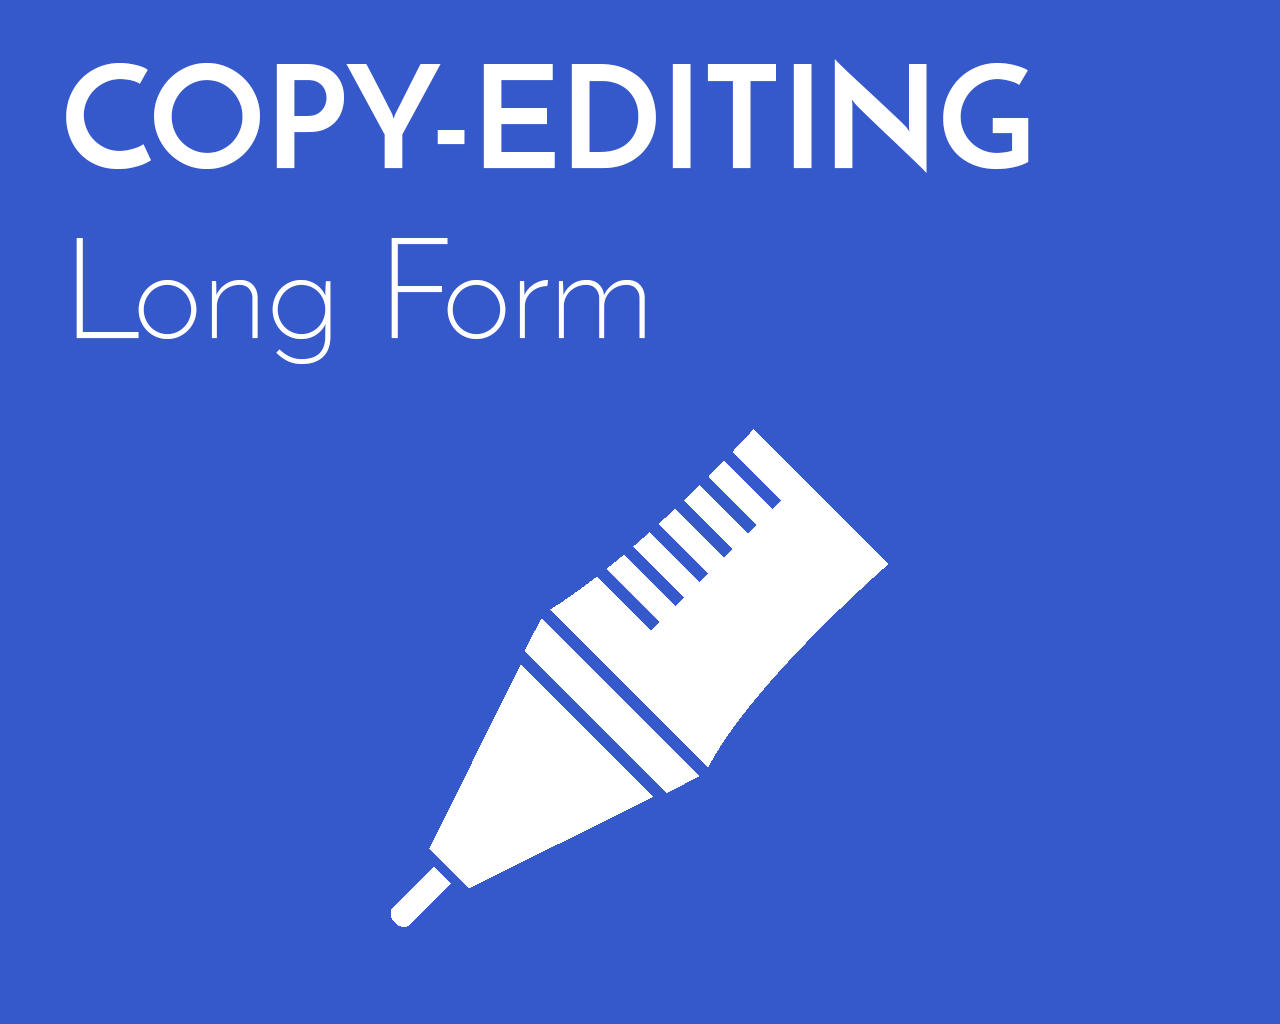 Professional Copy-Editing (Long Form) by emilyshore - 73465